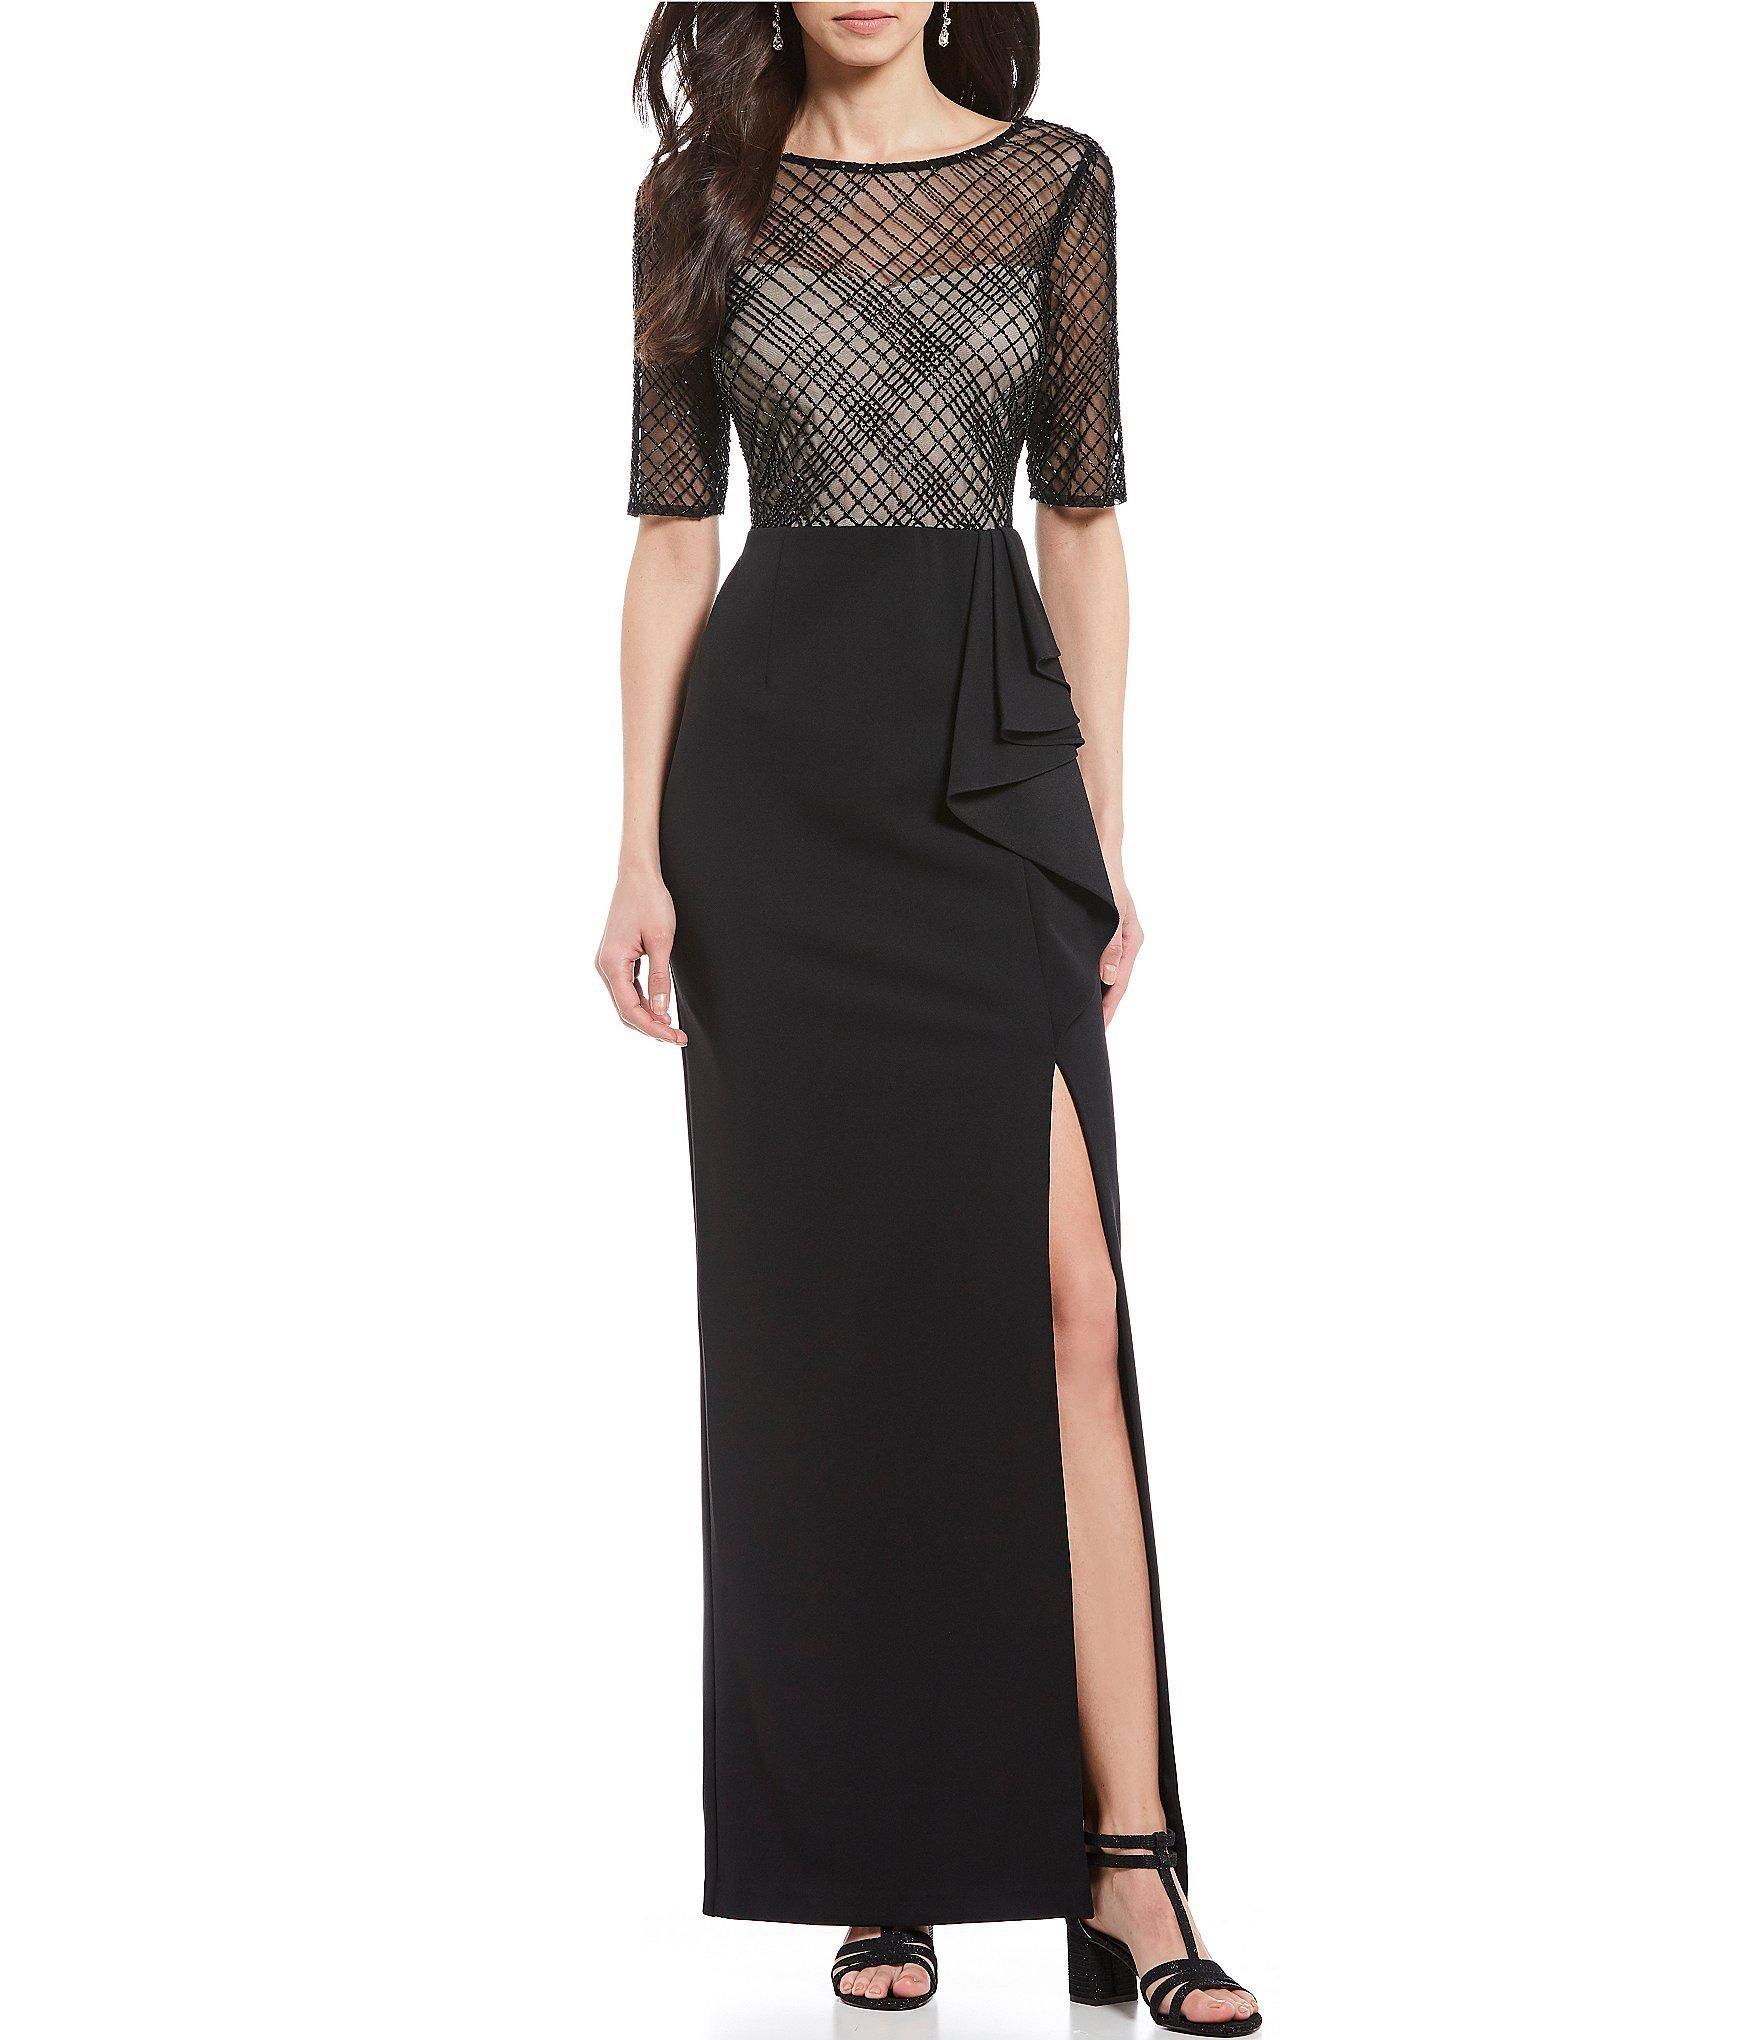 ba648c4c77c Adrianna Papell. Women s Black Illusion Beaded Bodice Ruffle Slit Front  Crepe Gown